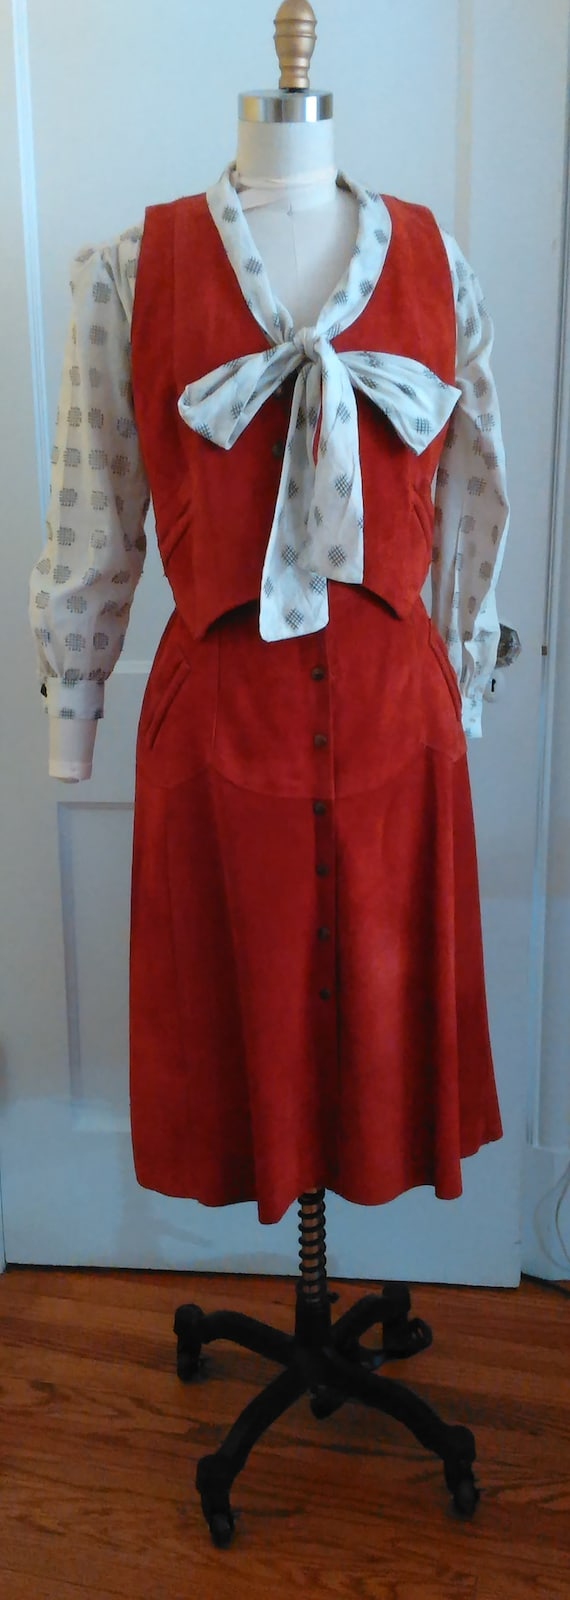 1970s Suede vest and skirt - image 7